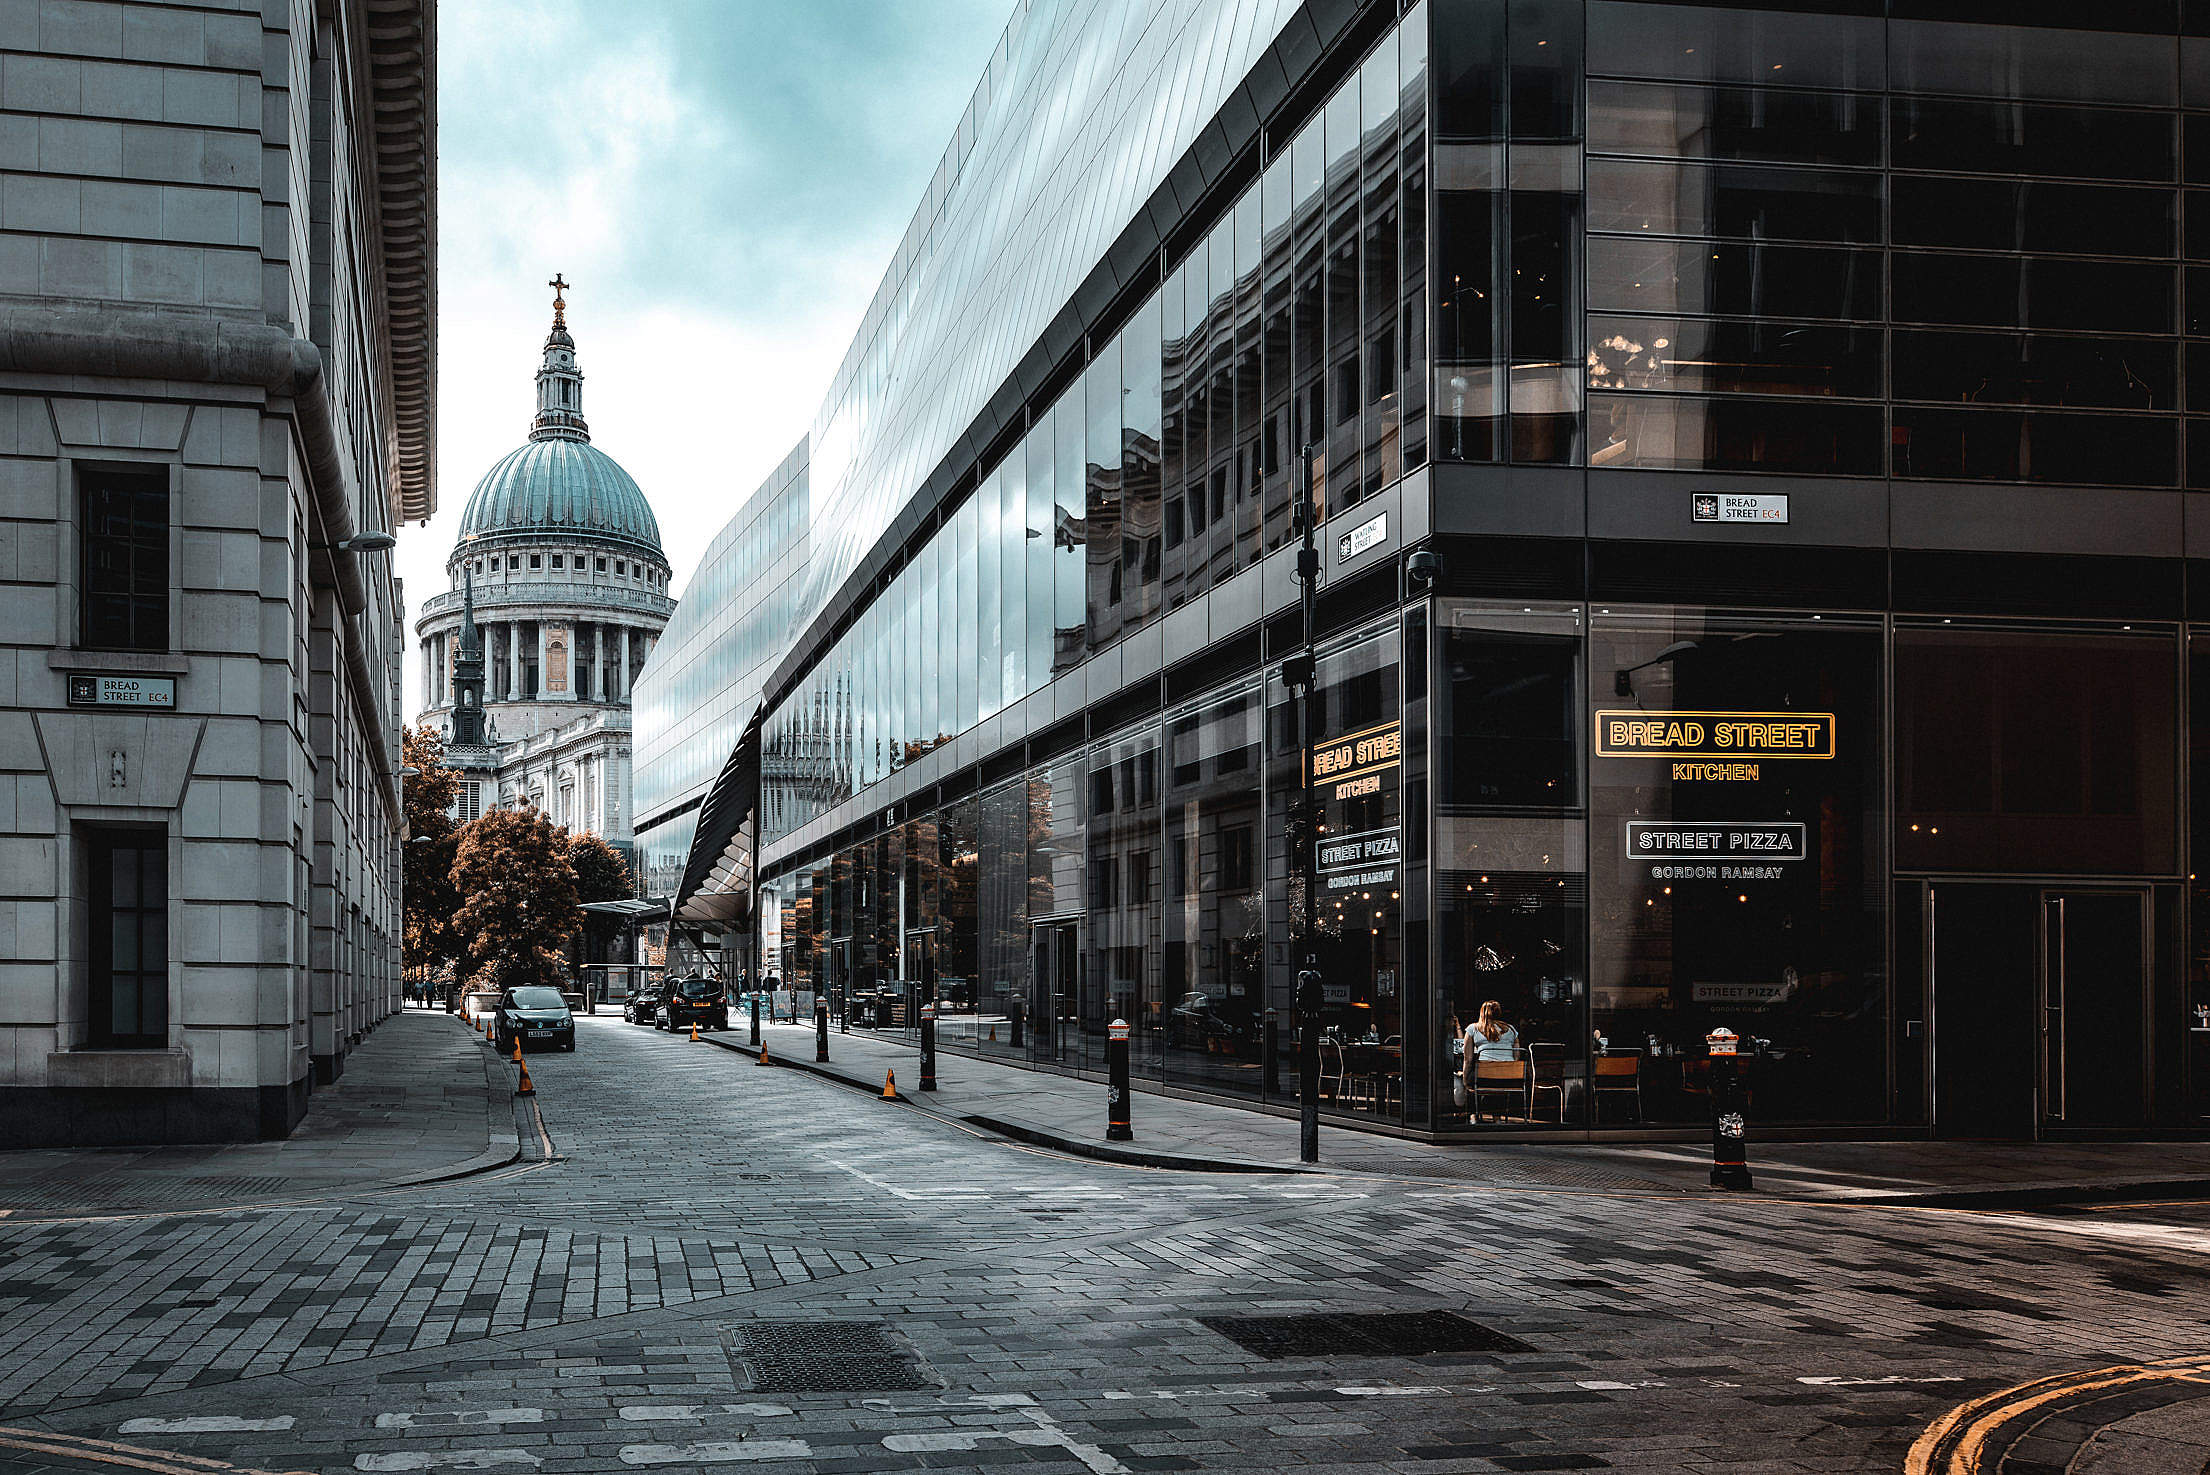 London Streets and St Paul's Cathedral Free Stock Photo